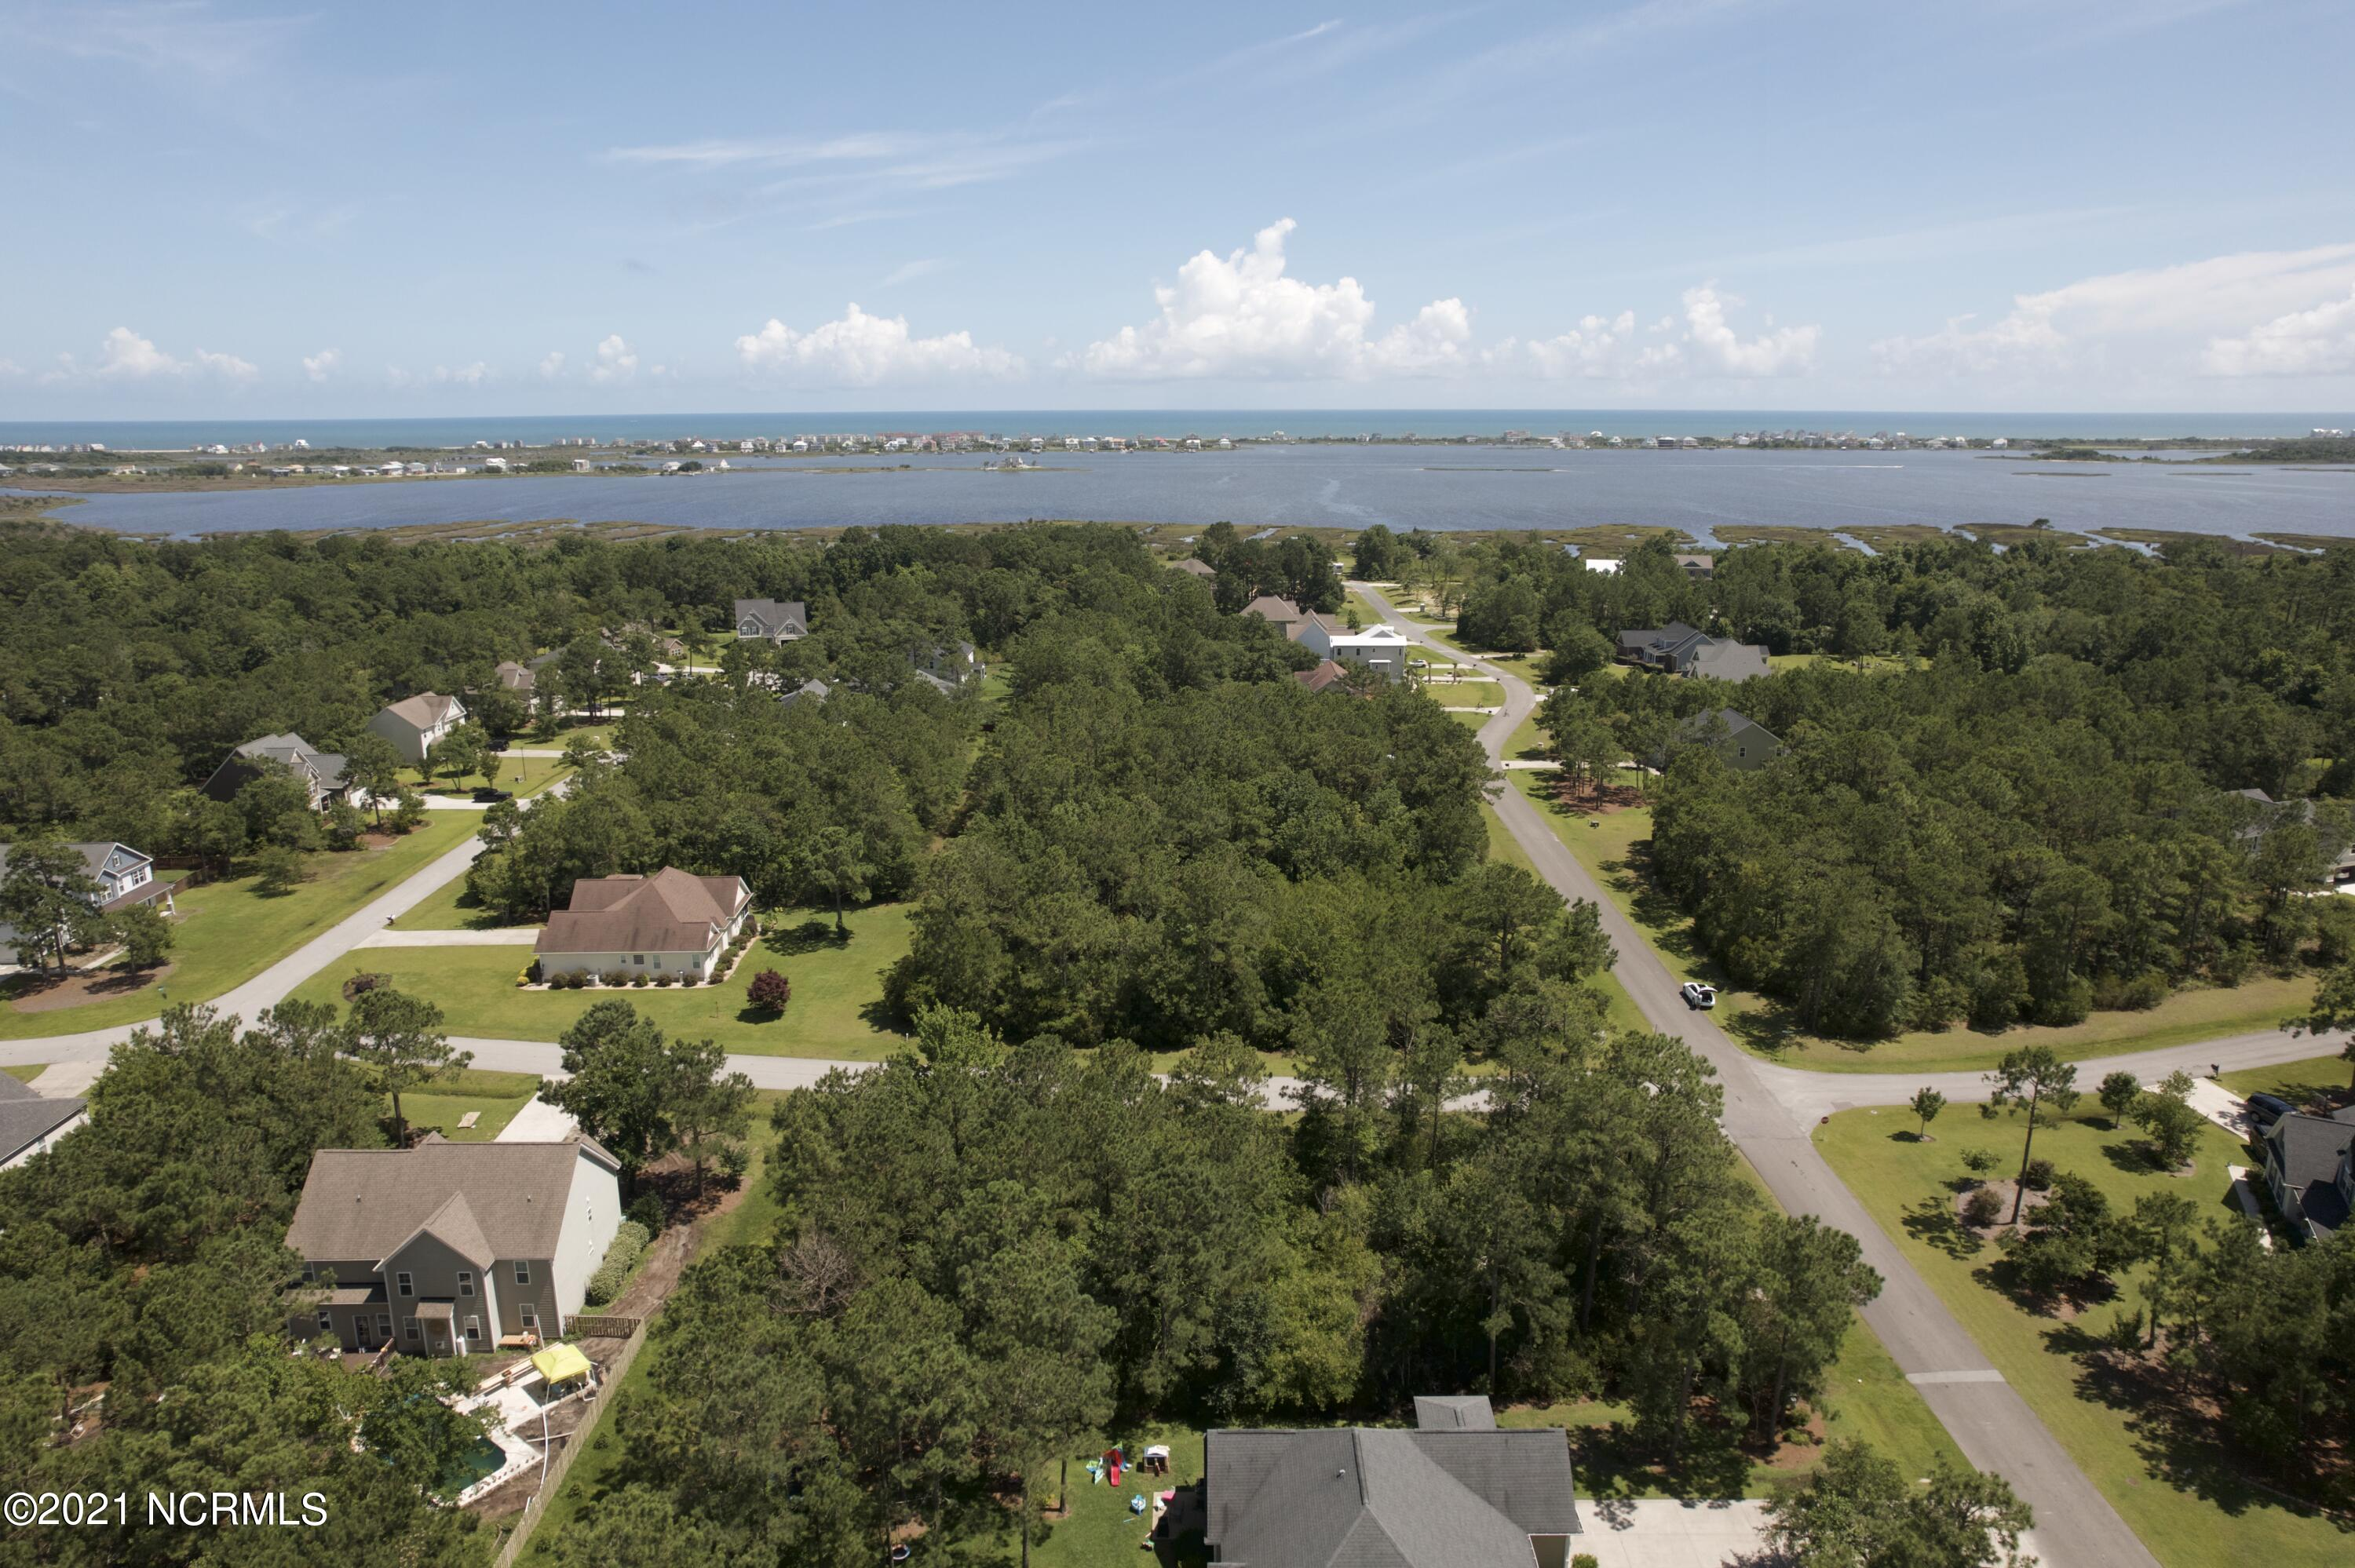 Build your Dream Home on this beautiful corner lot located in the desirable Mimosa Bay Community.  Mimosa Bay is located just minutes to the beaches of Topsail Island and 5 minutes to the back gage of Camp Lejeune and Stone Bay. This lot is just shy of 1/2 an acre and is the perfect lot for your future forever home.  Mimosa Bay is a quiet gated community with amenities to keep you busy.  Enjoy the clubhouse, swimming pool, tennis courts, boat launch/ramp, dock, and water access to ICW just minutes from your lot.In your free time, check out the local shops of Sneads Ferry and Surf City.  Call your local Realtor today for more information!